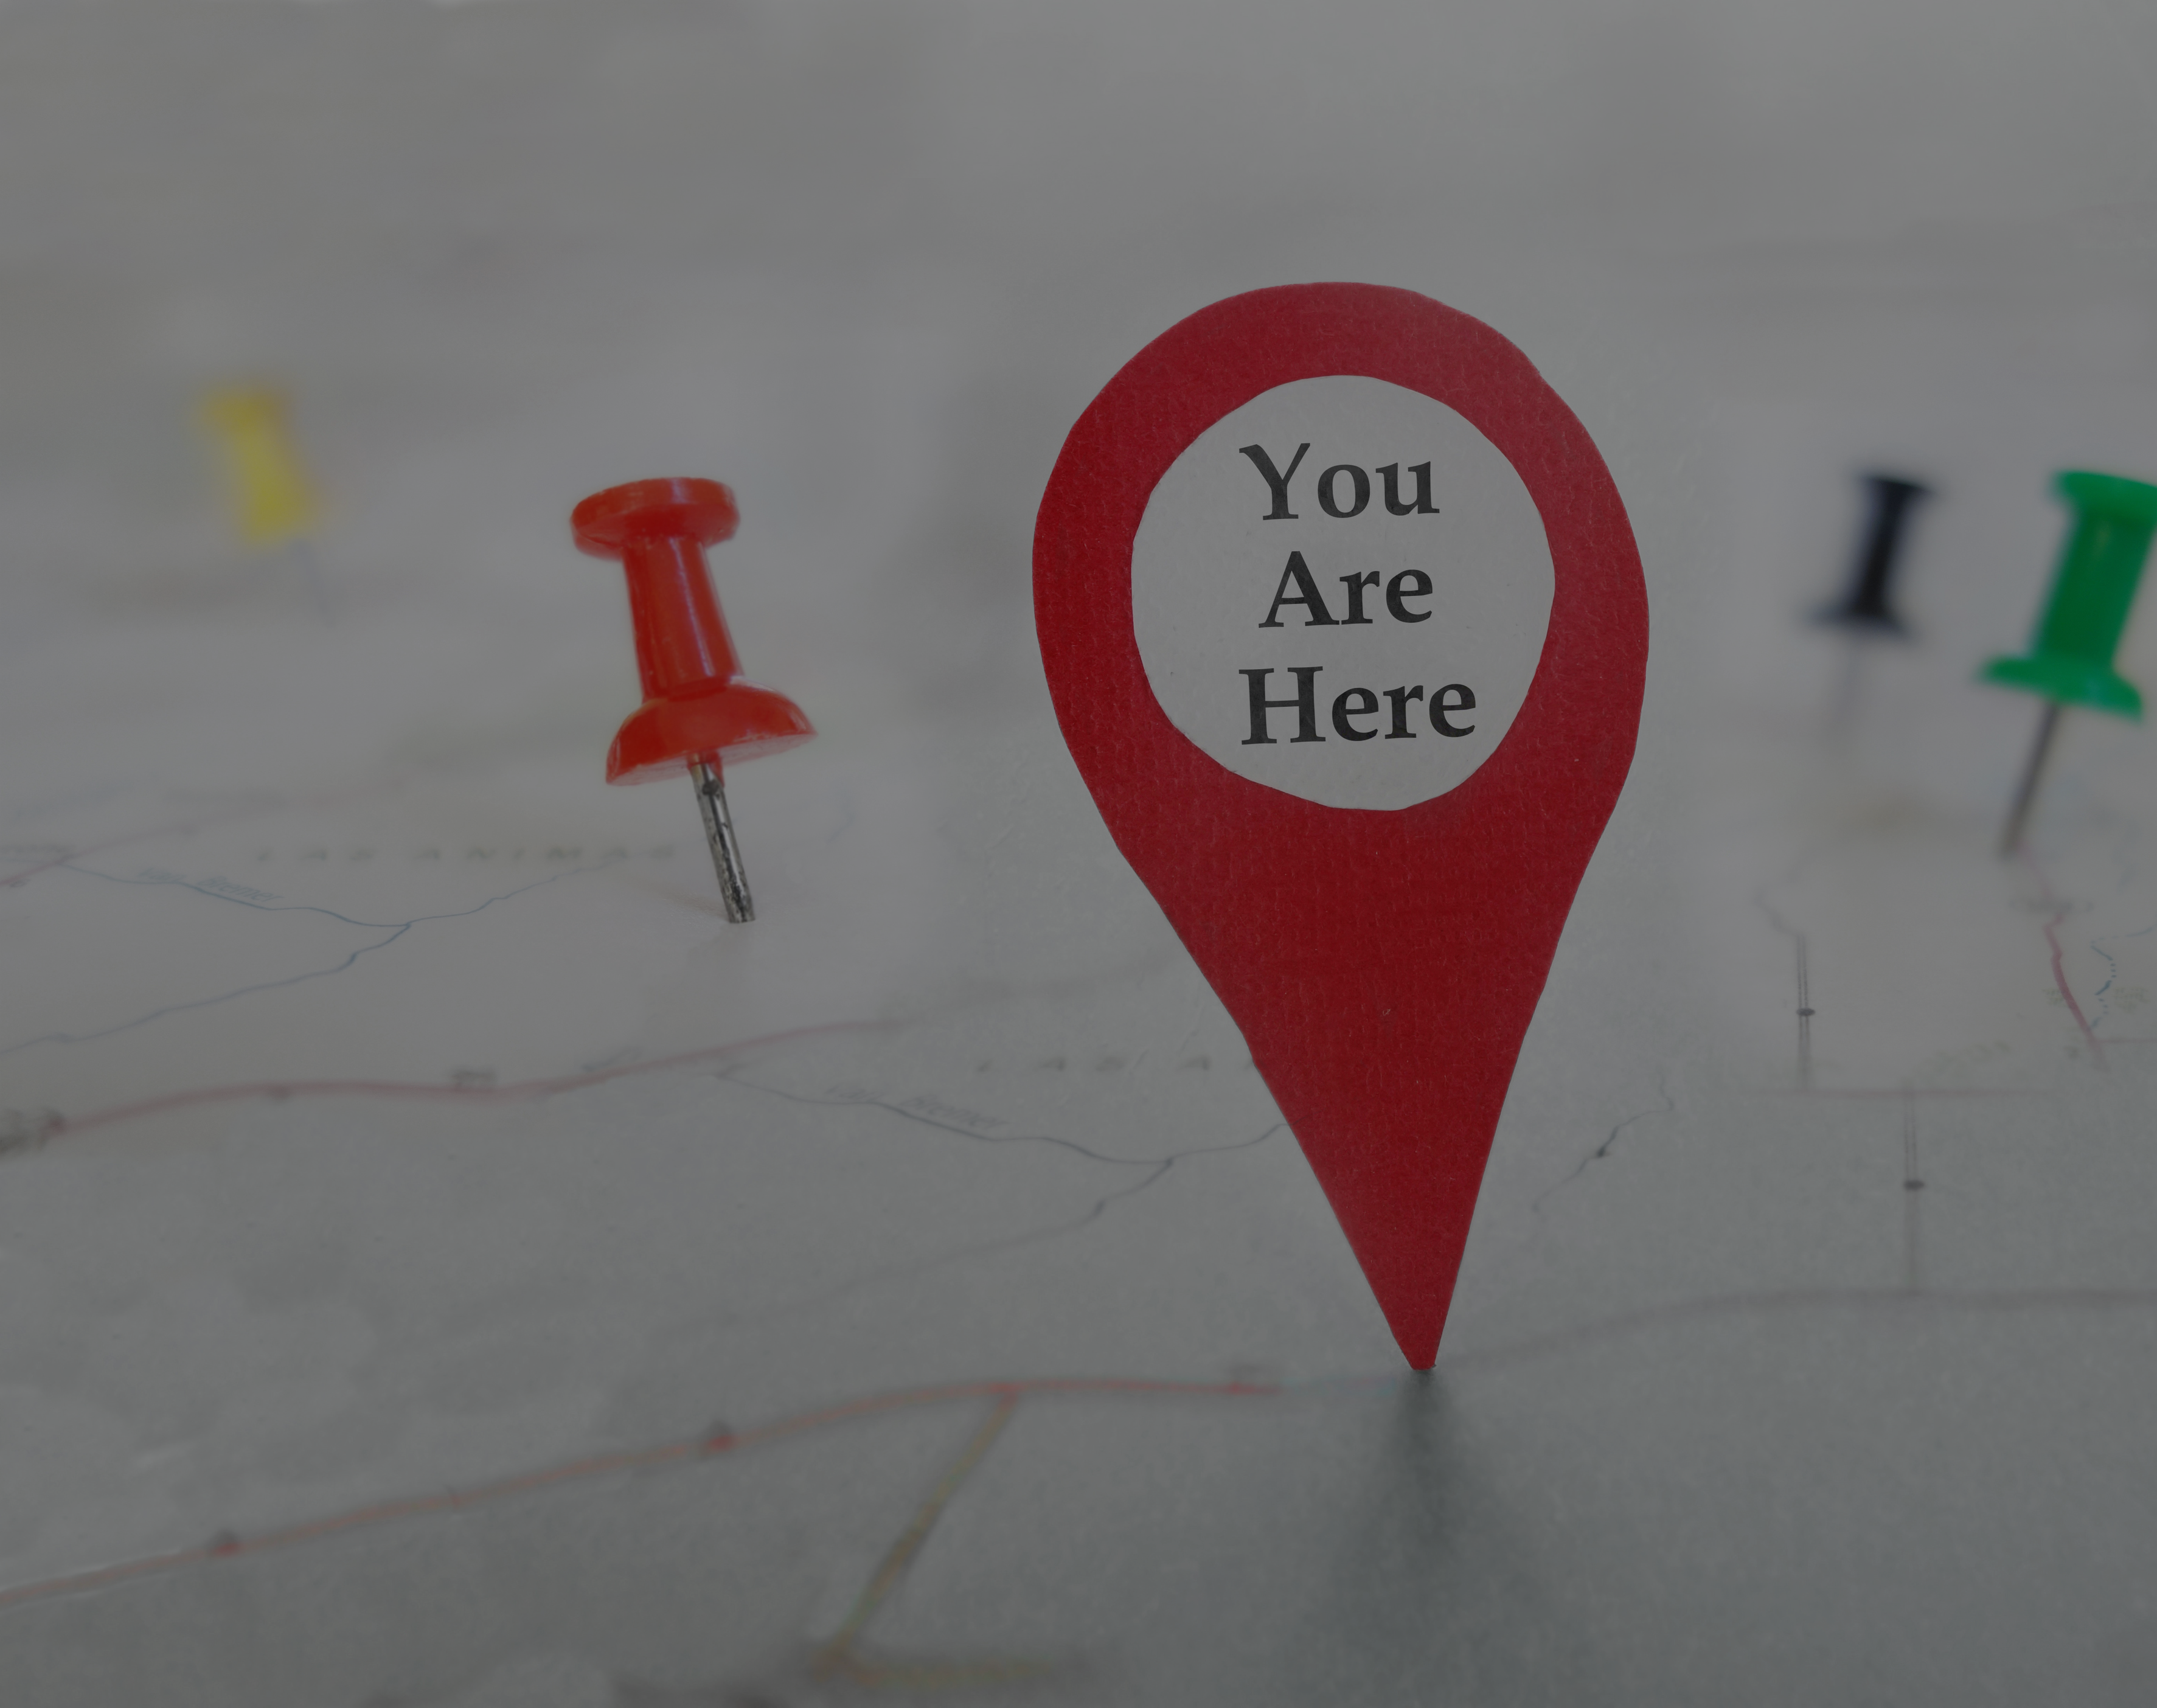 How to Personalize Your Landing Page Dynamically Based on Location [STEP-BY-STEP]